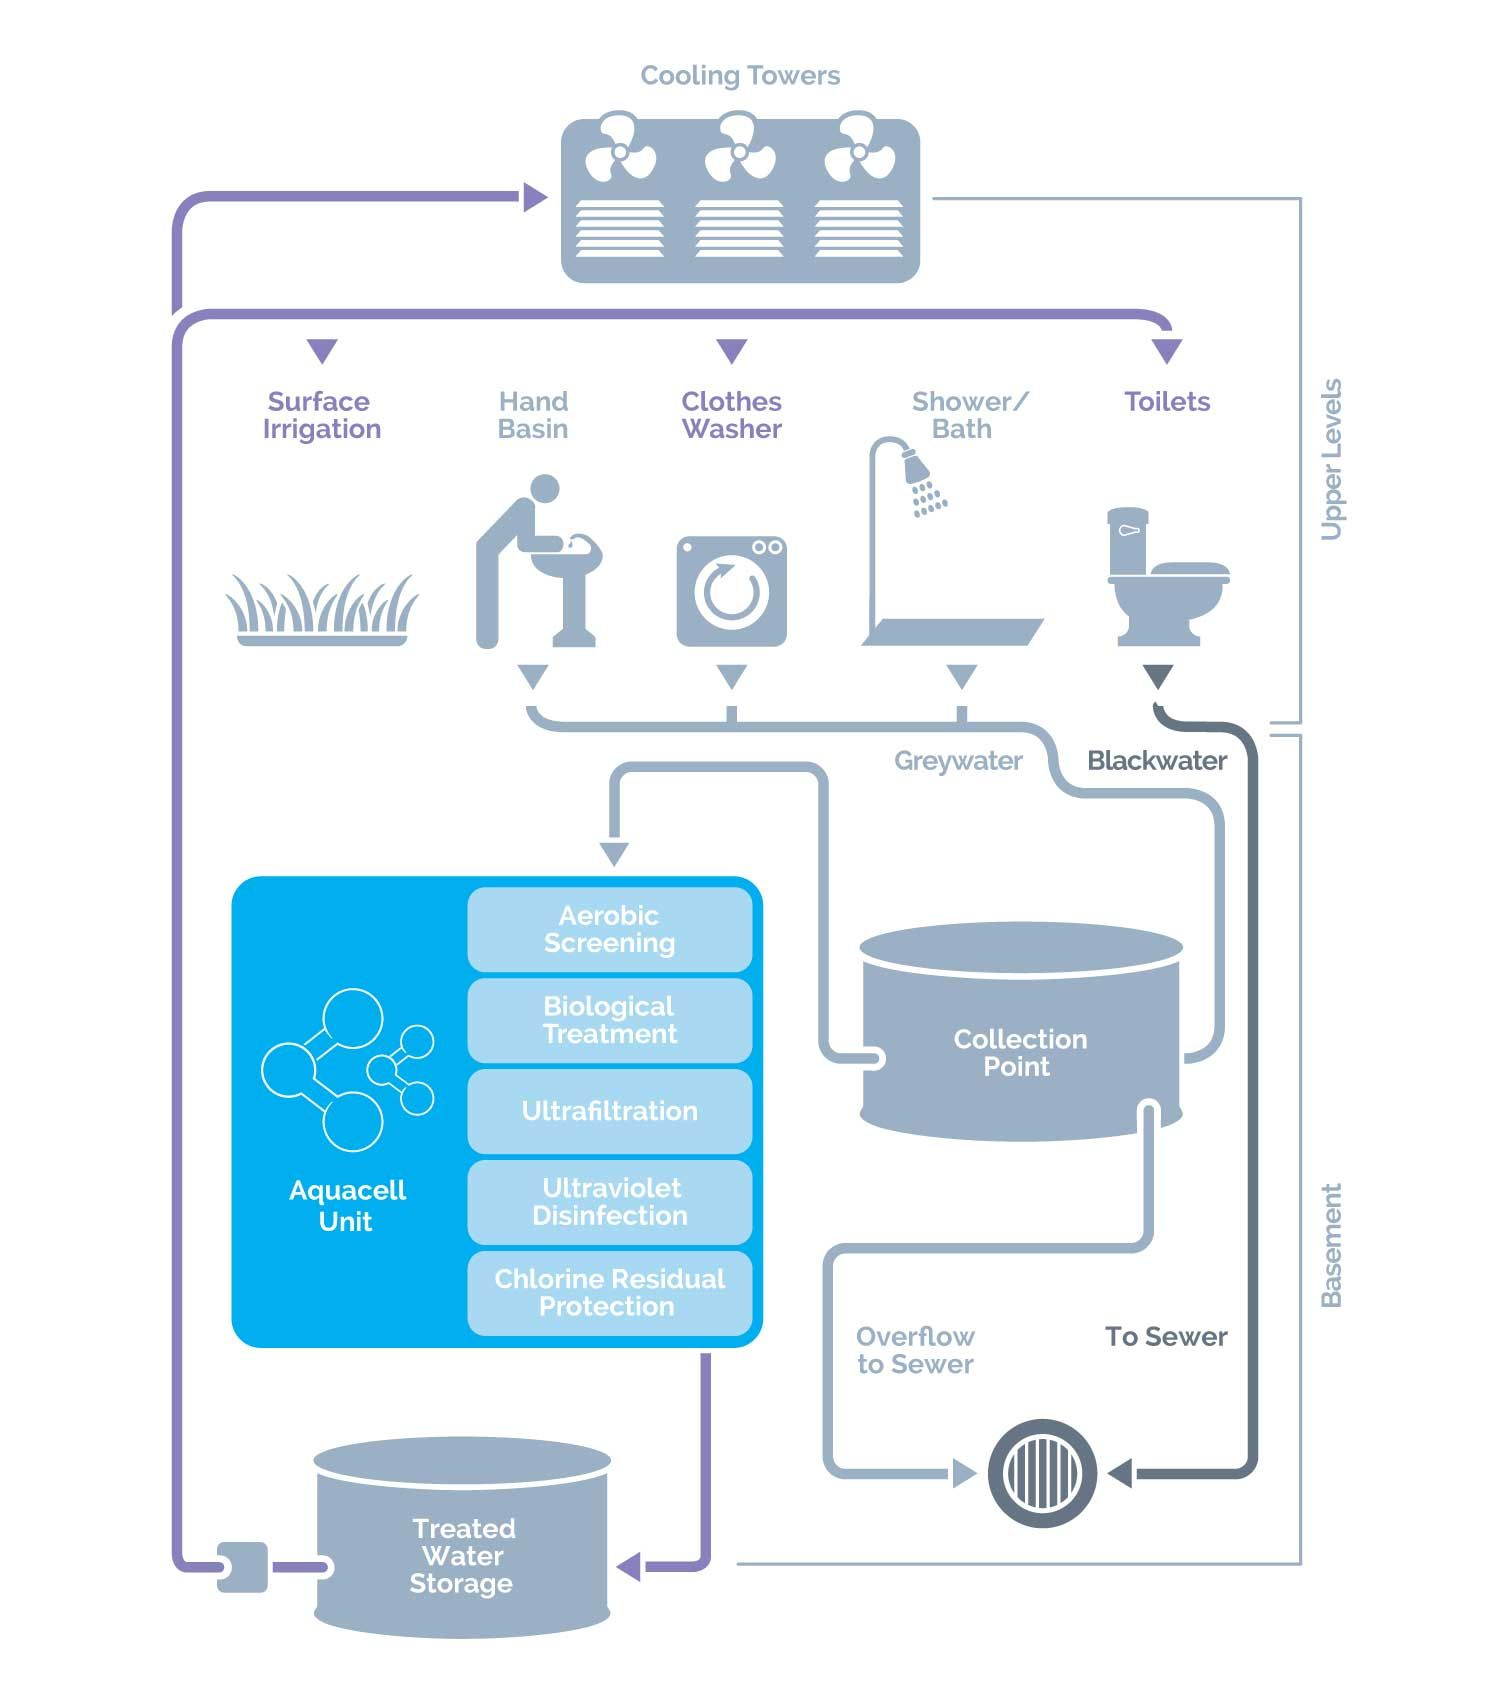 Aquacell Greywater System Greywater Recycling Phoenix Process